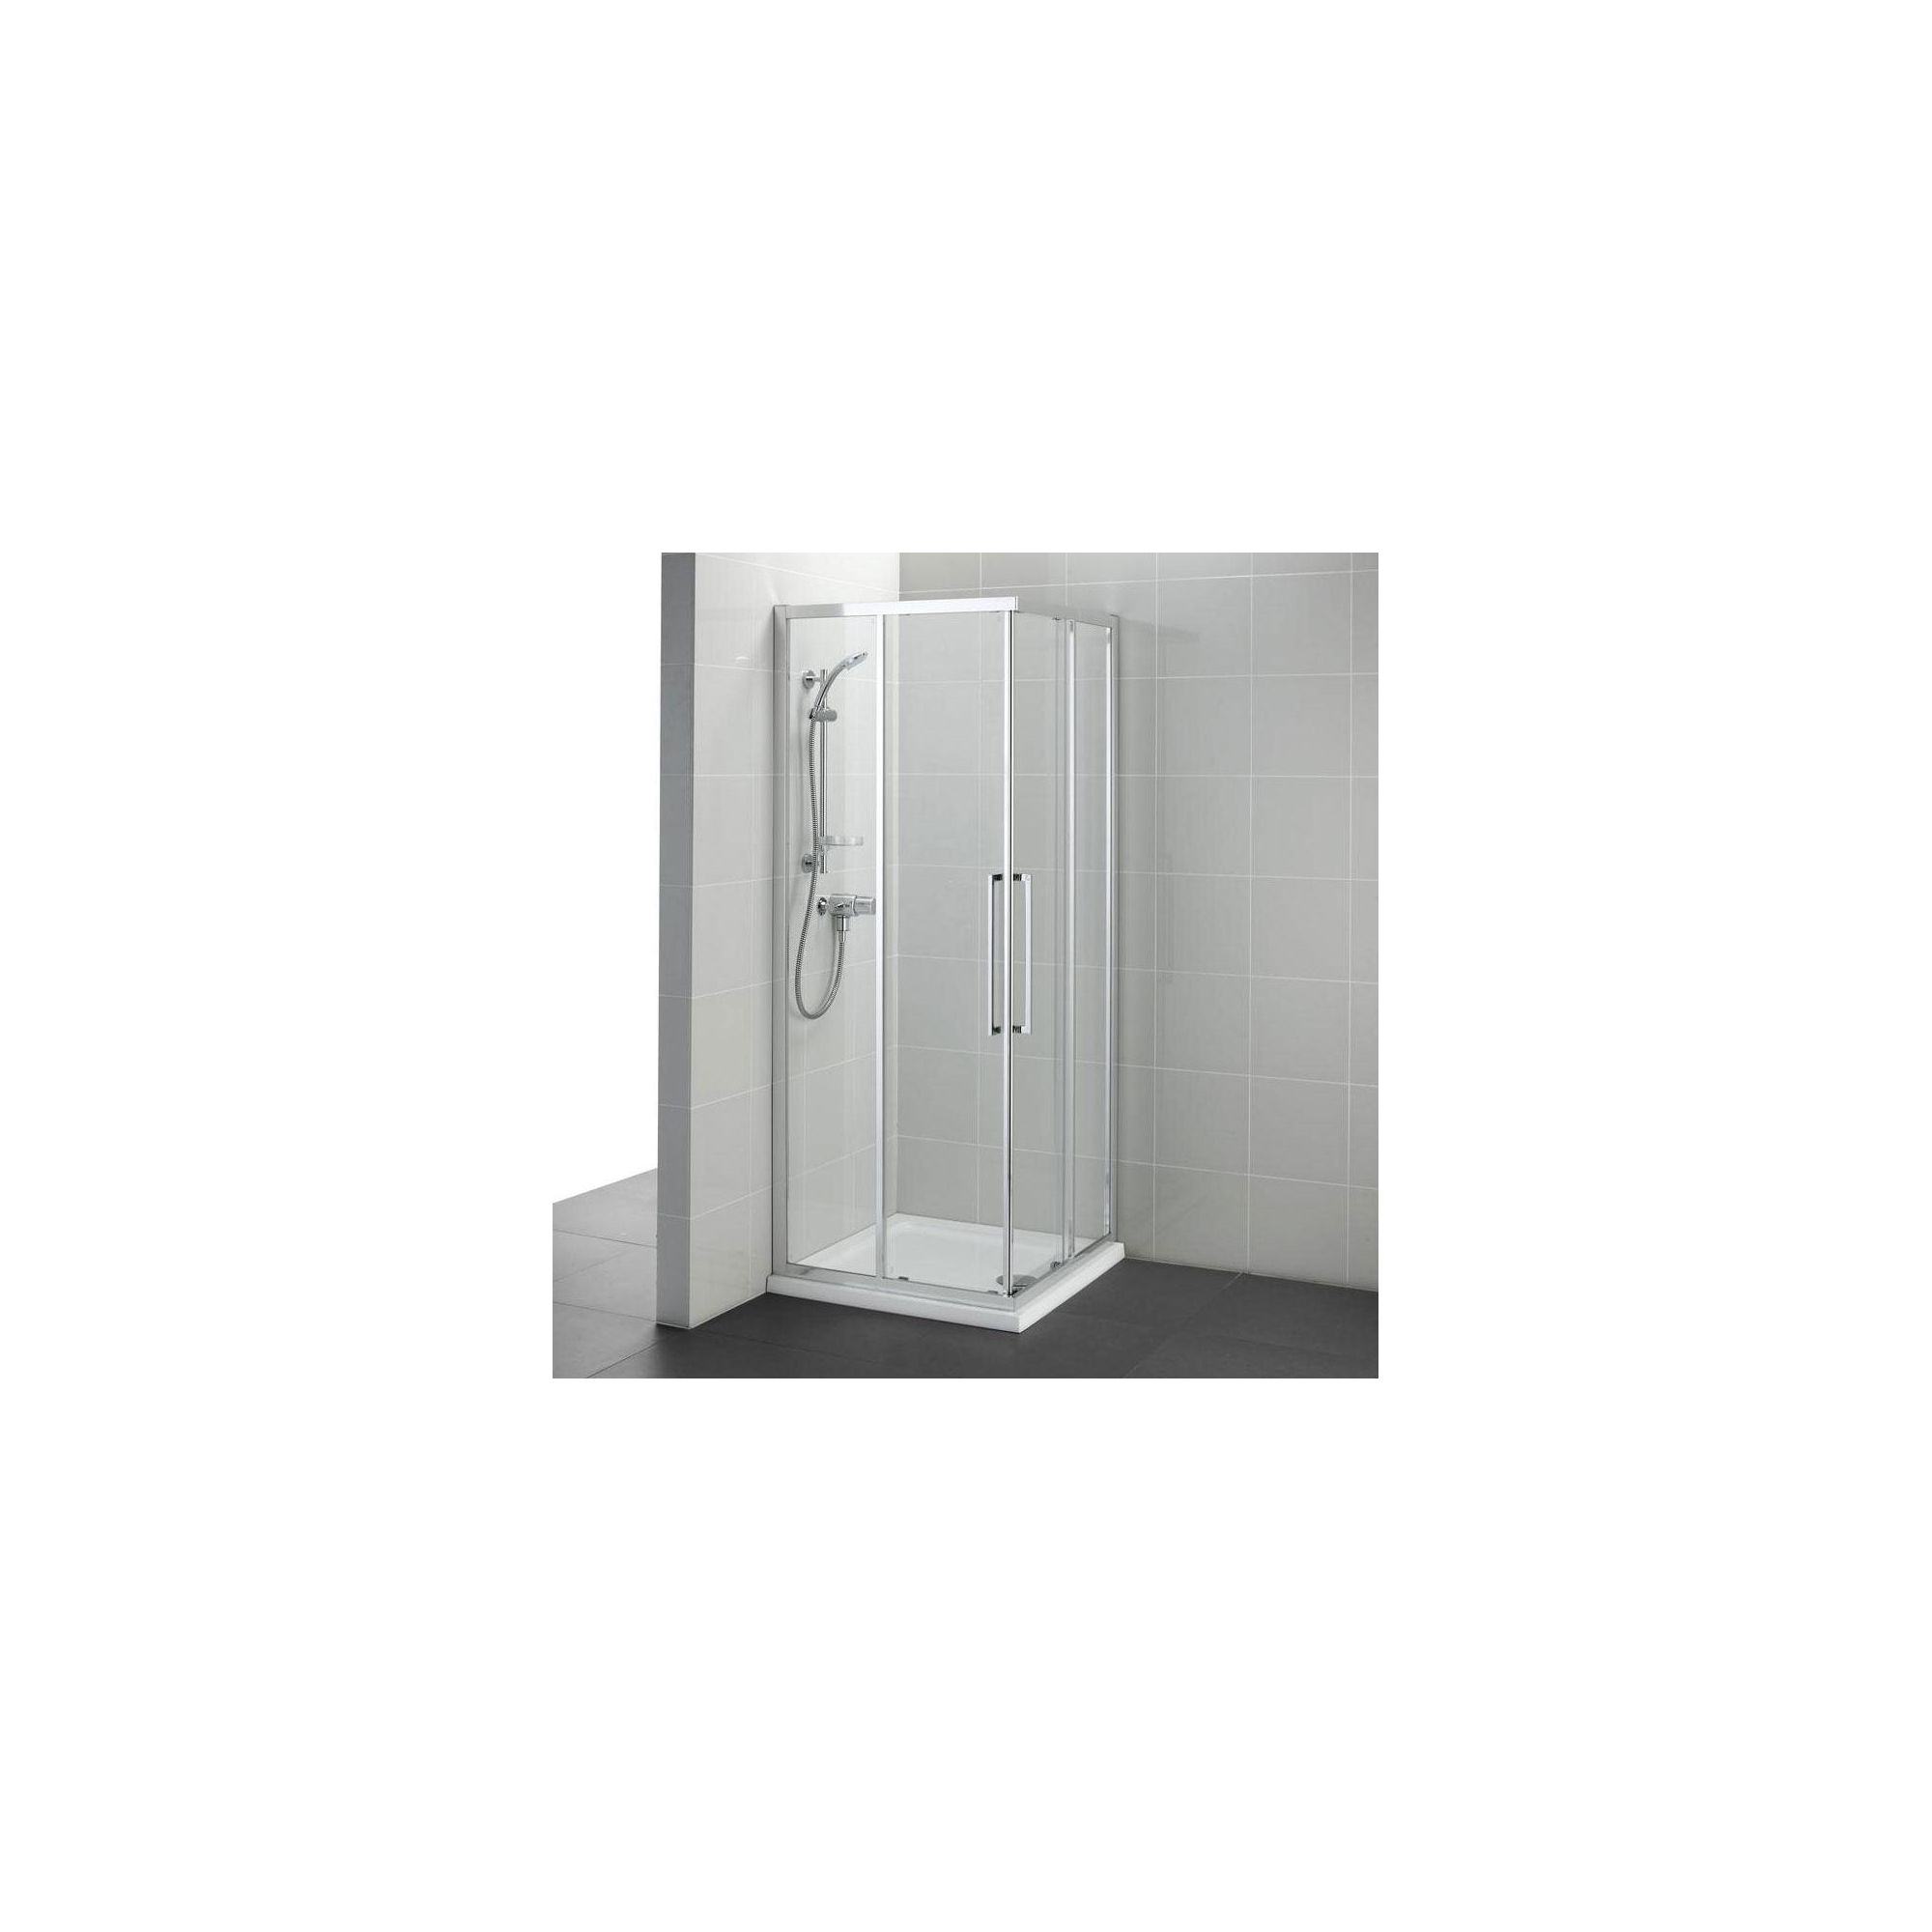 Ideal Standard Kubo Corner Entry Shower Enclosure, 800mm x 800mm, Bright Silver Frame, Low Profile Tray at Tesco Direct